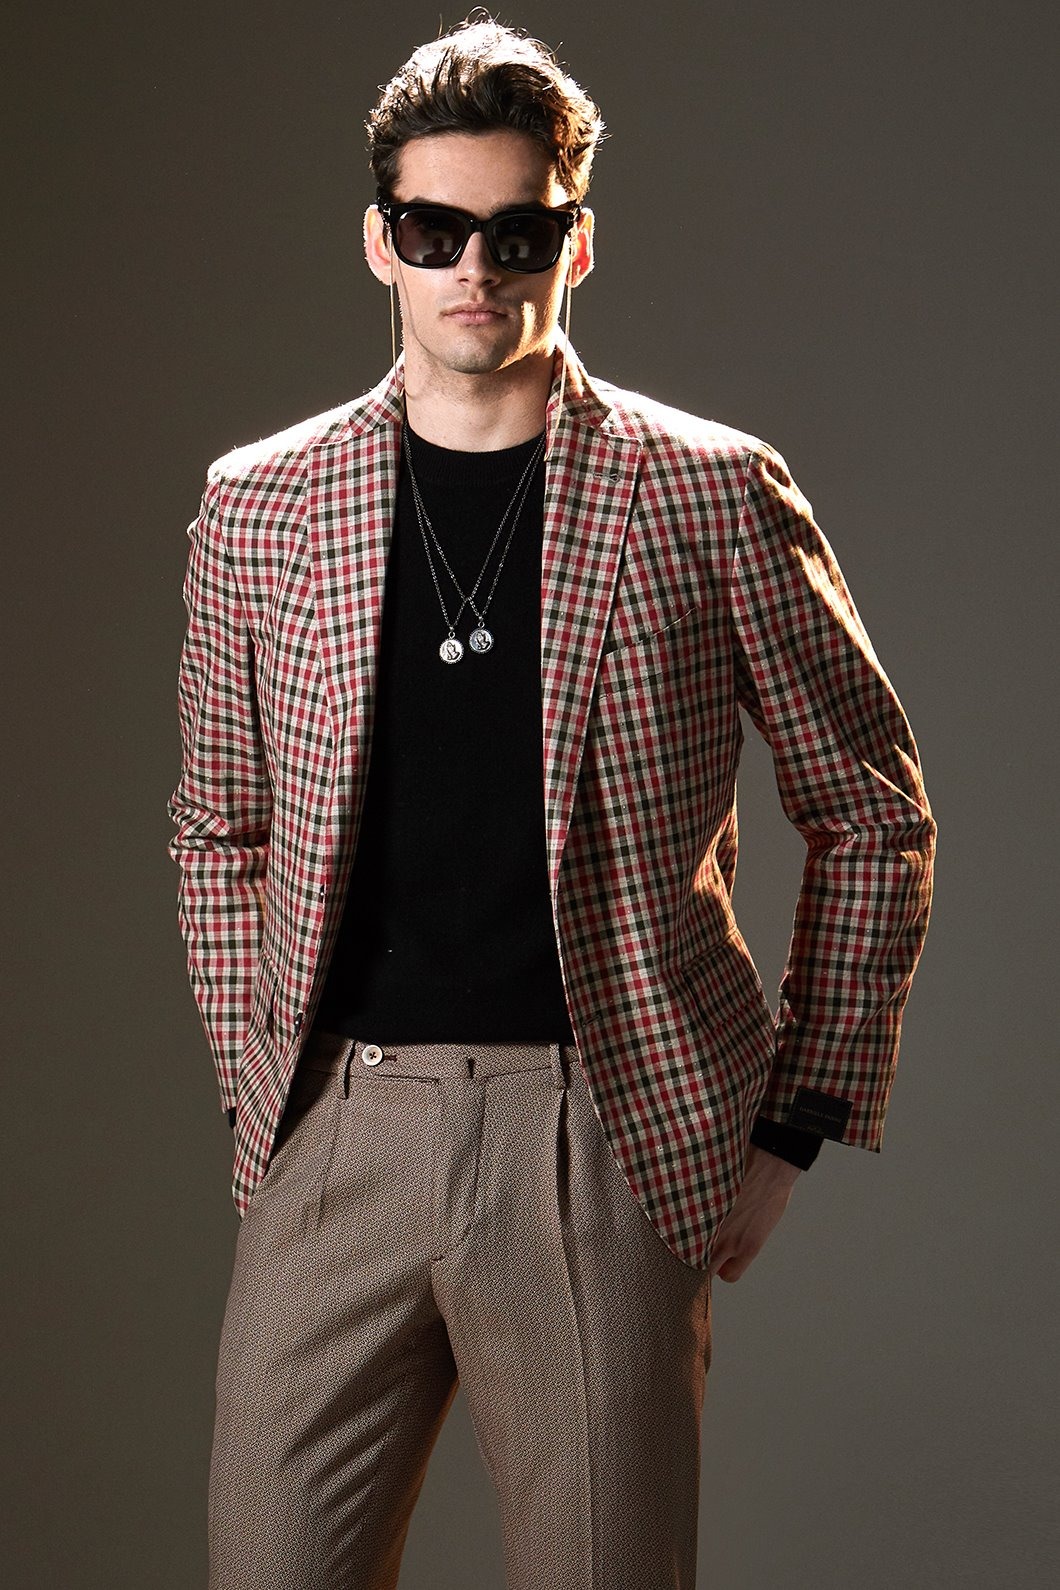 PASINI Hasling Filo Check Single Jacket-Red